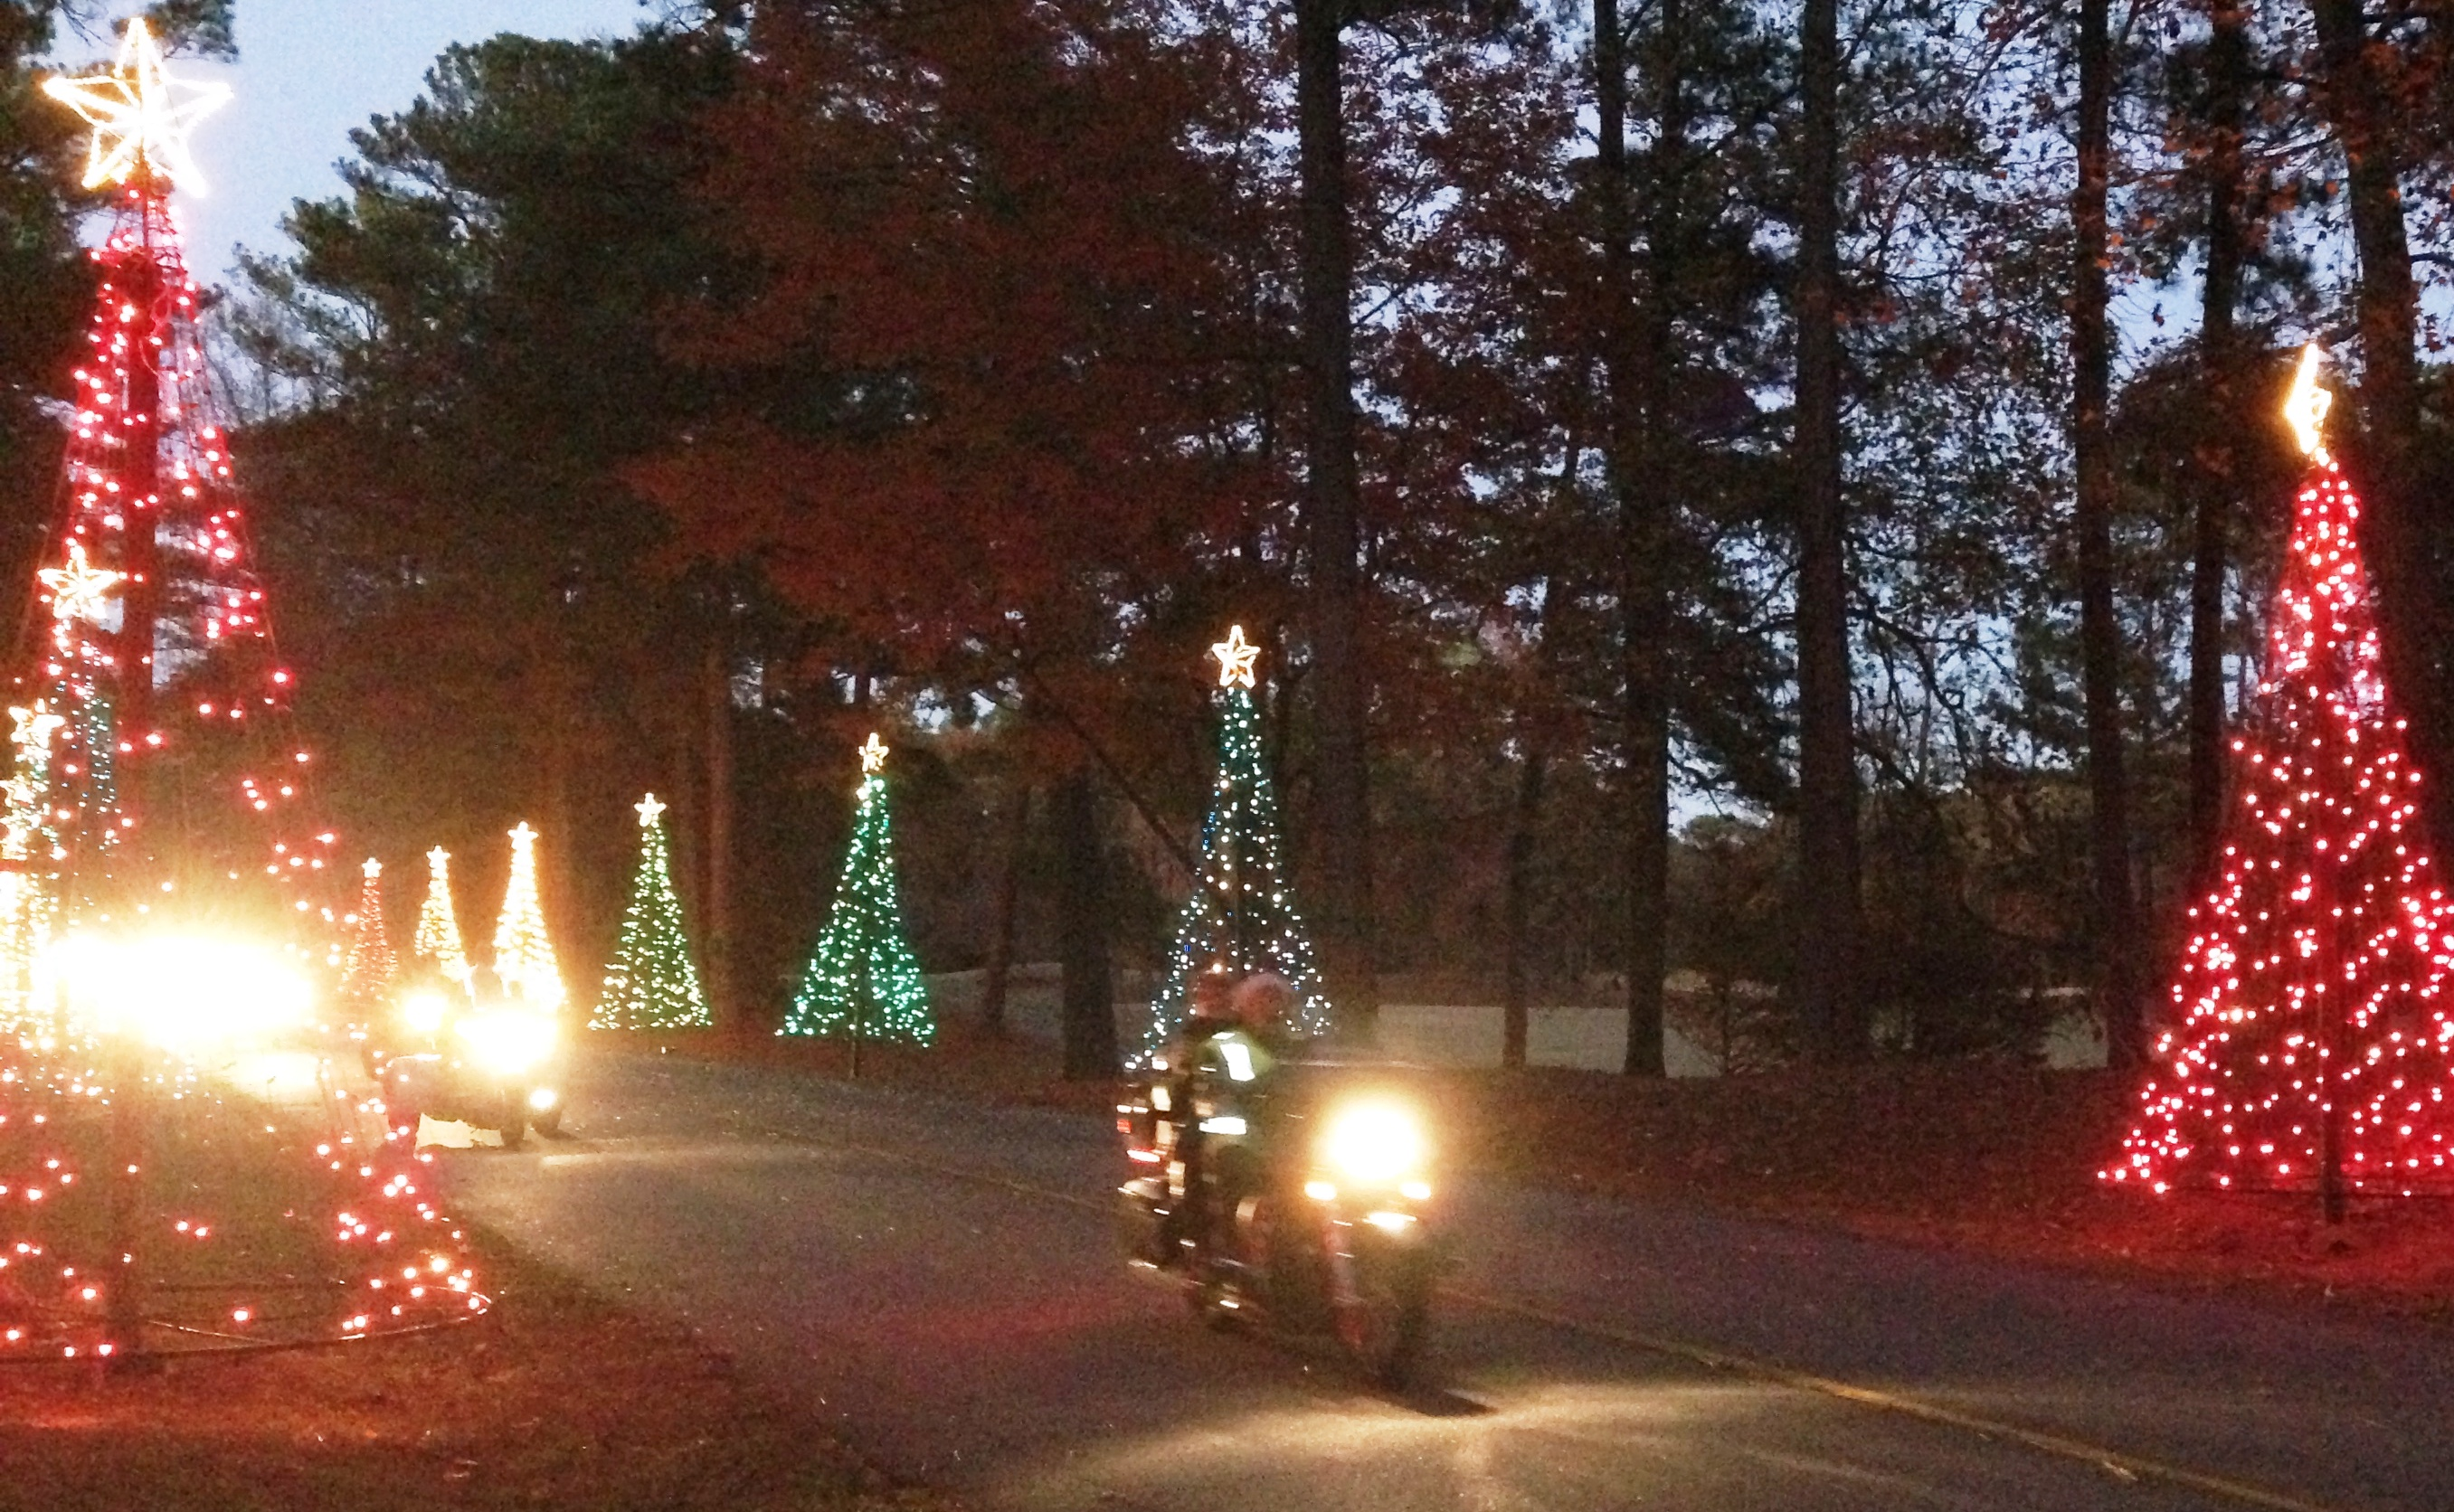 Tickets For Motorcycle Night At Callaway Gardens In Pine